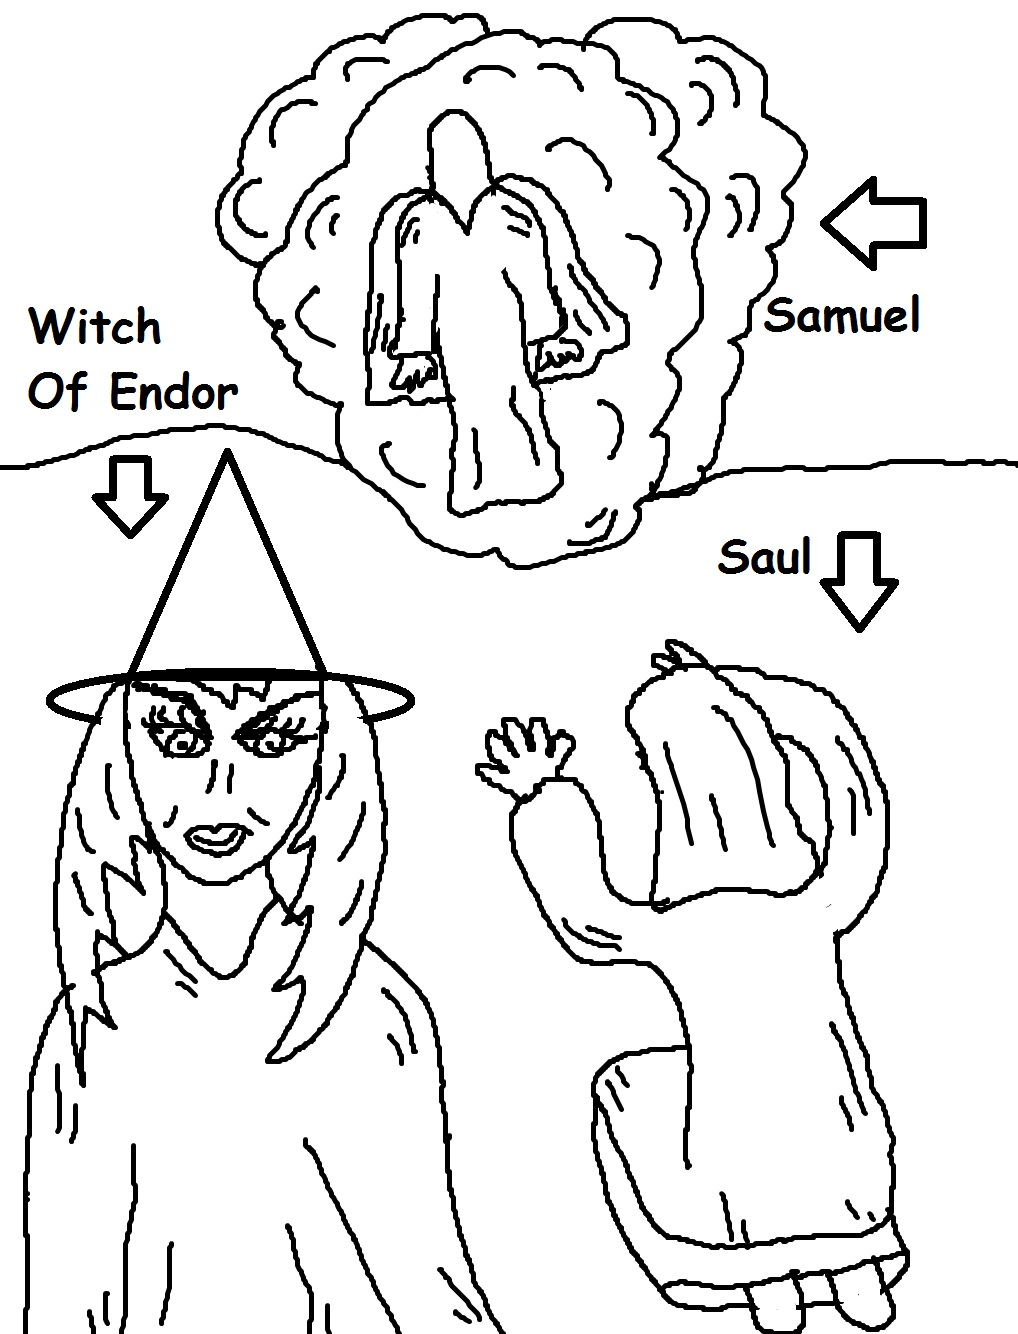 Saul And The Witch Of Endor Sunday School Lesson